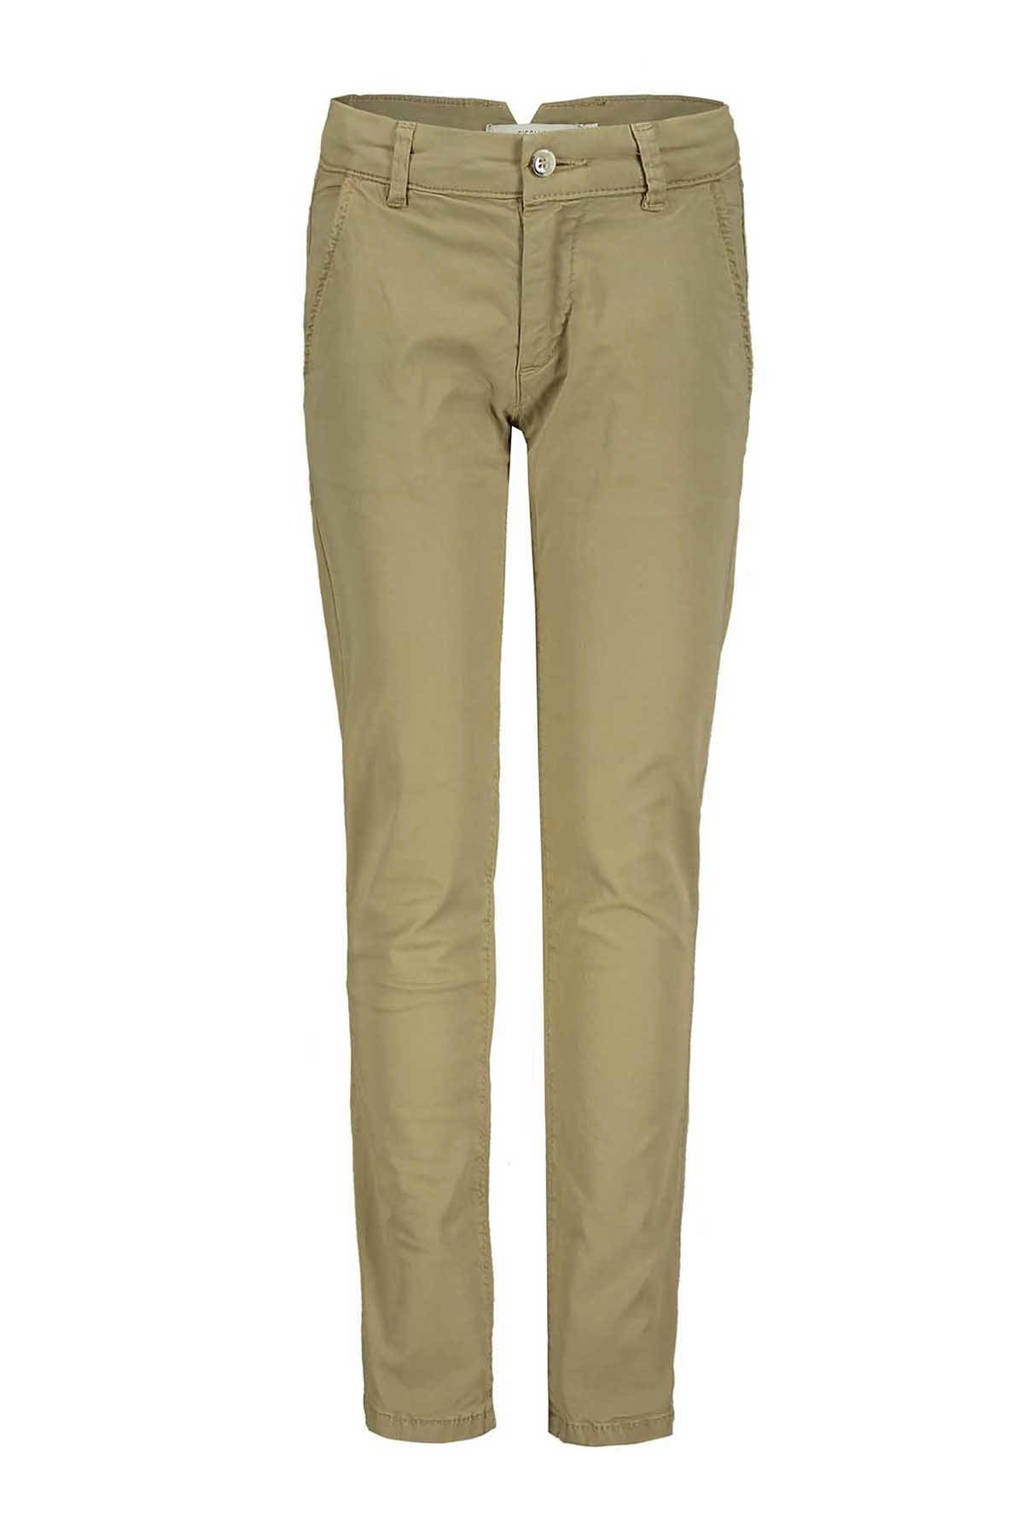 Sissy-Boy straight fit broek taupe, Taupe